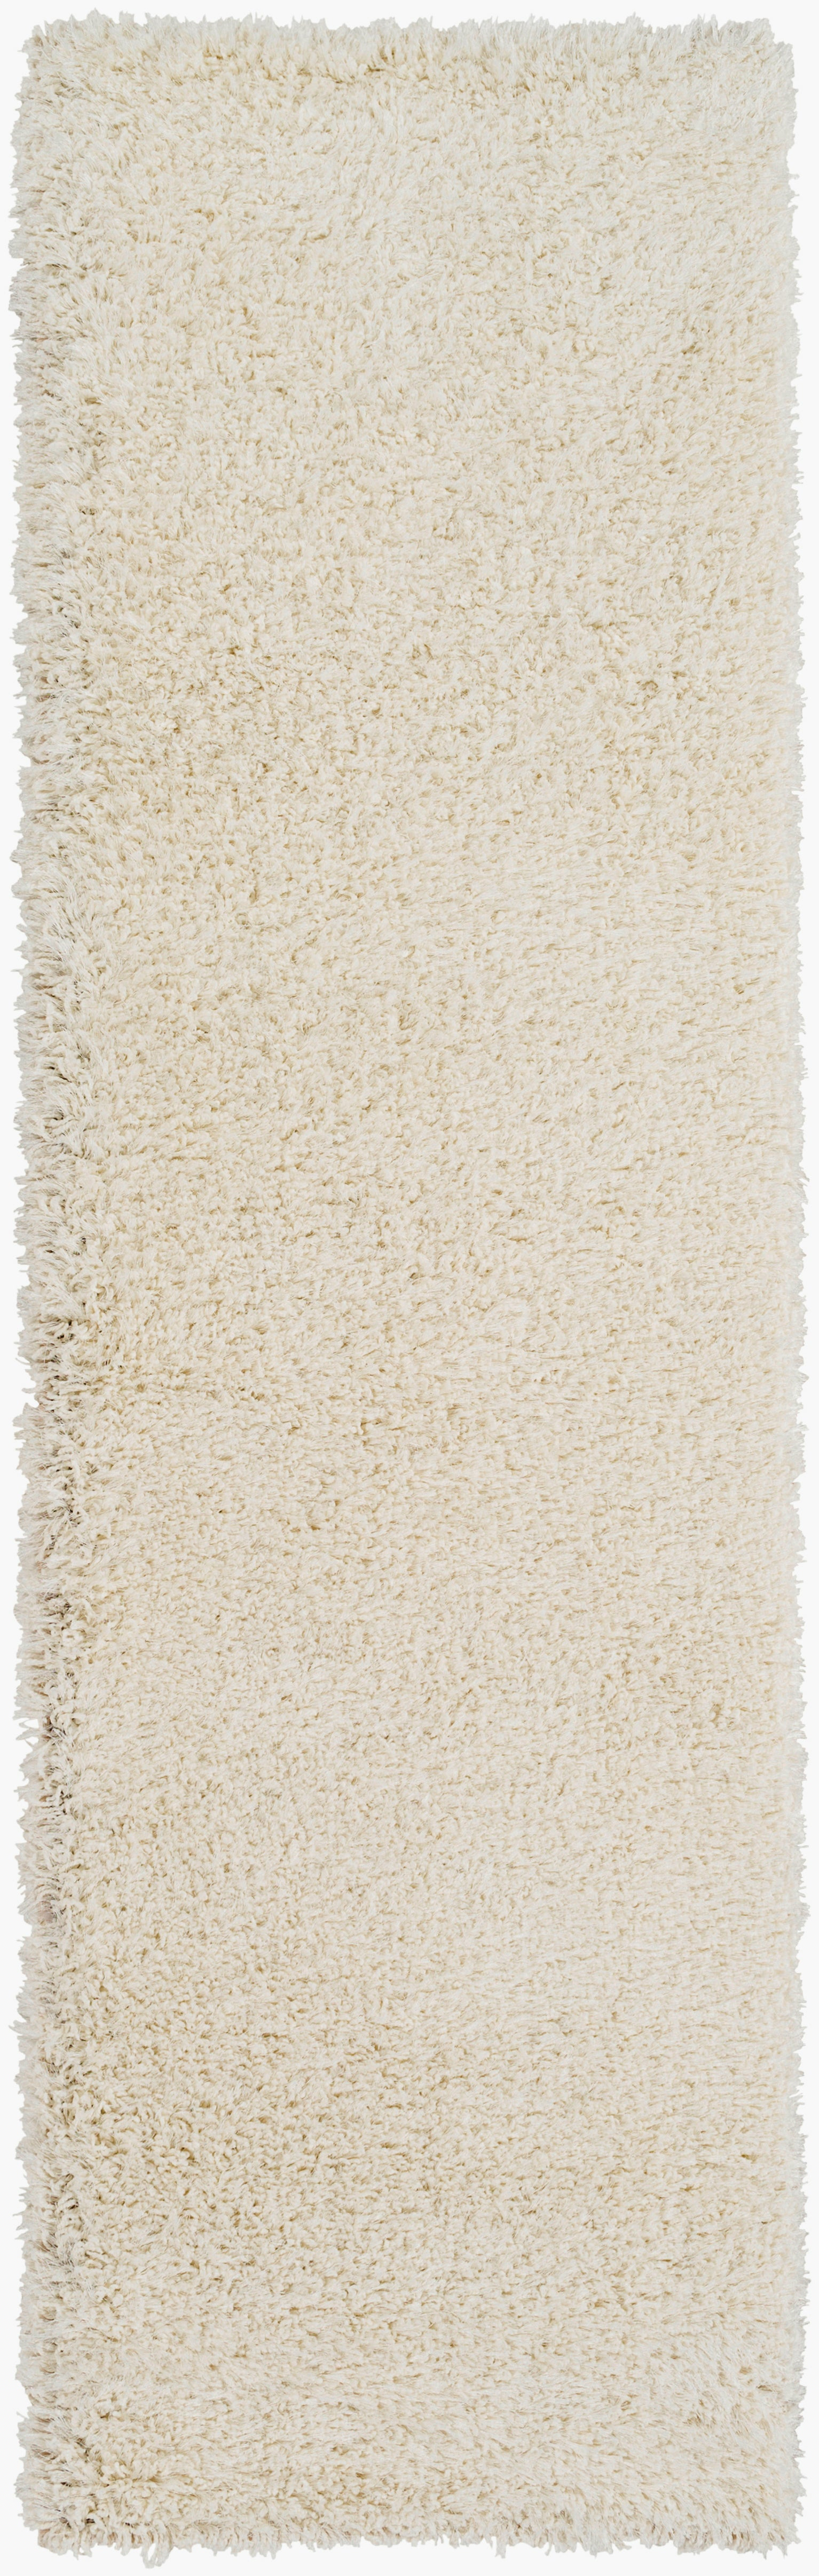 Surya Mercer MCR2008 Neutral Area Rug